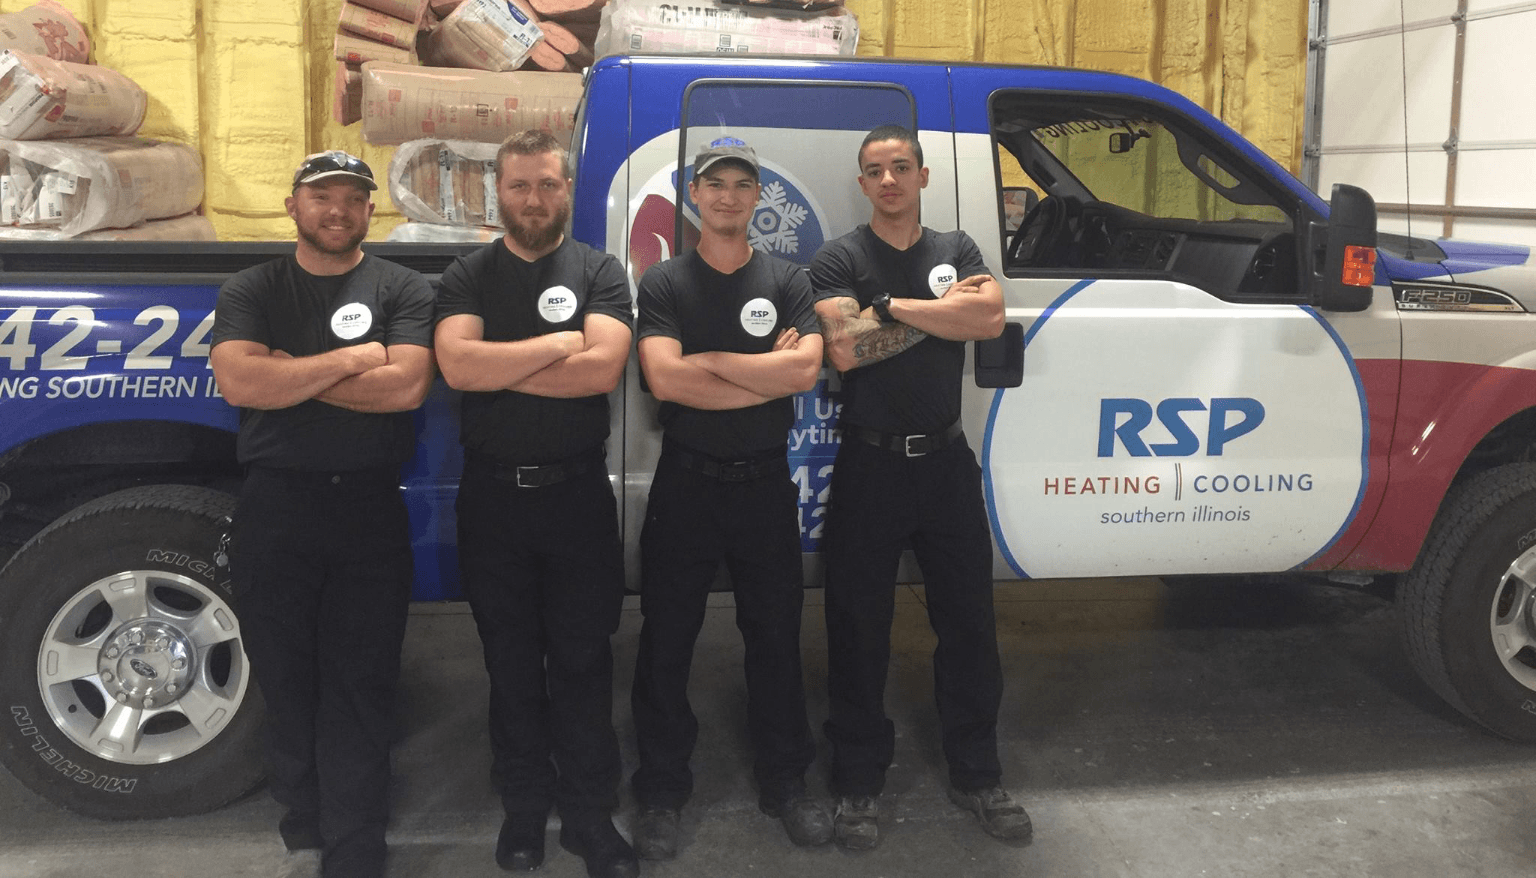 heating and cooling company near me - rsp hvac